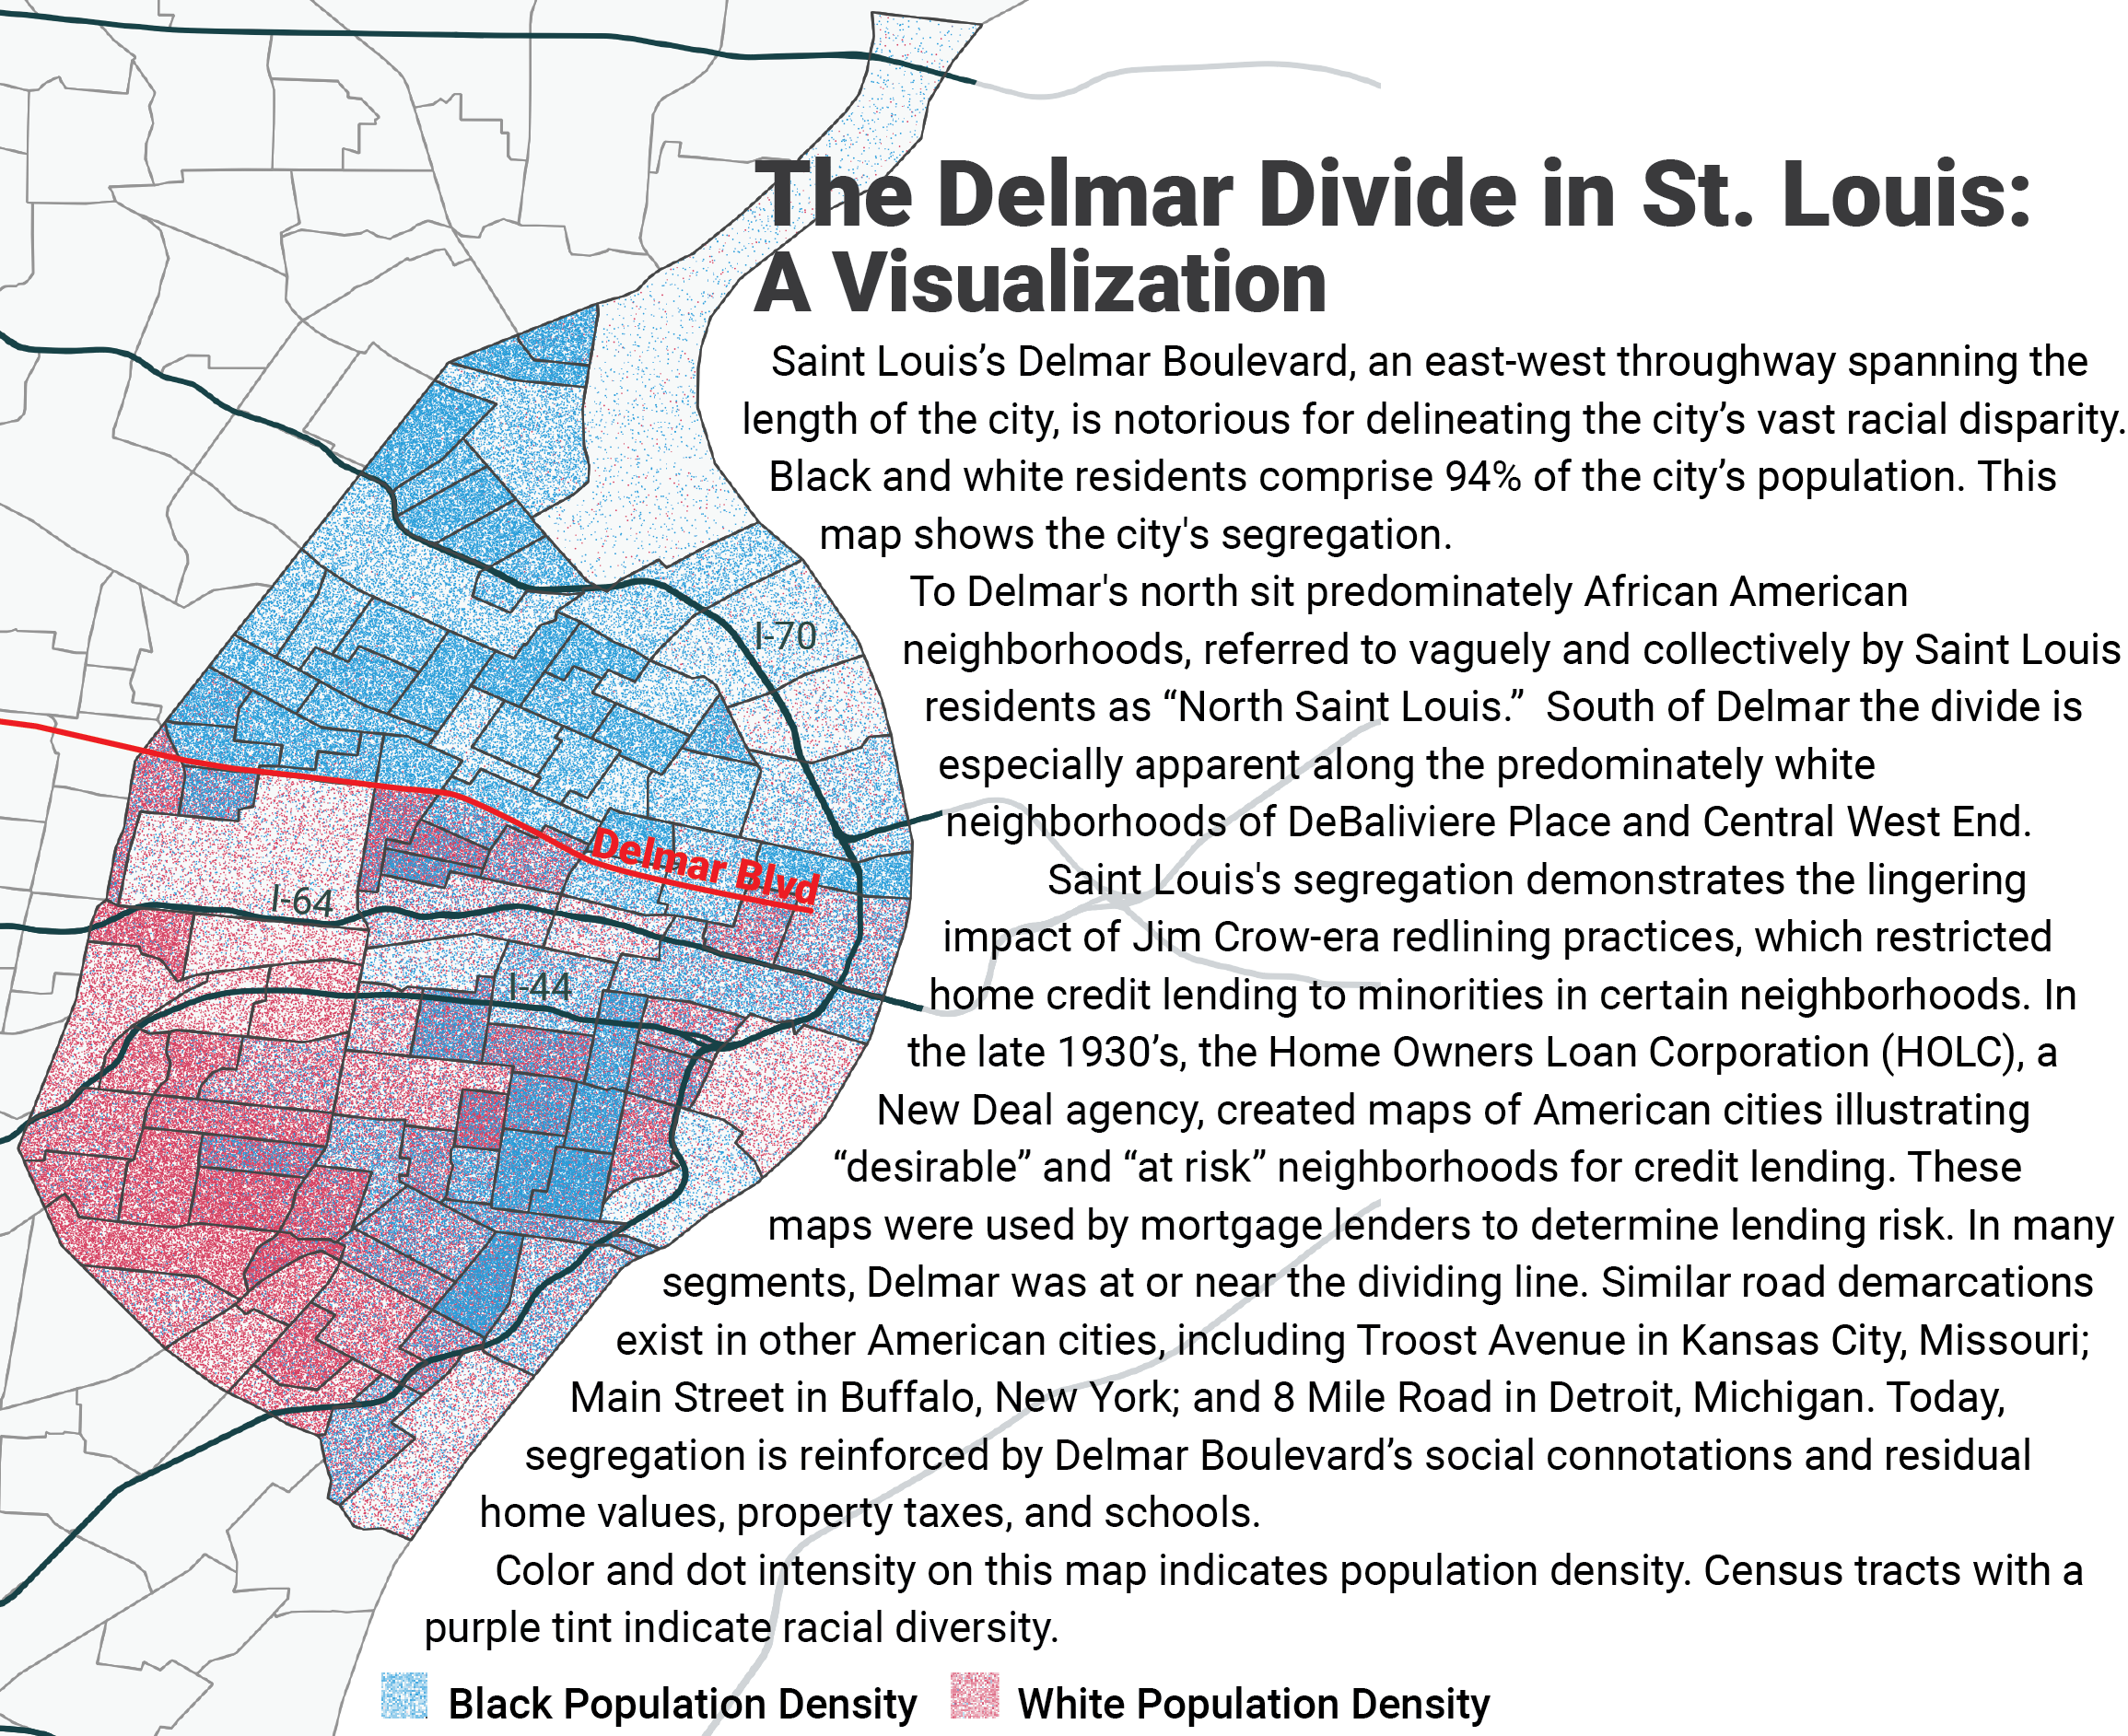 Dot map of Saint Louis displaying race and density